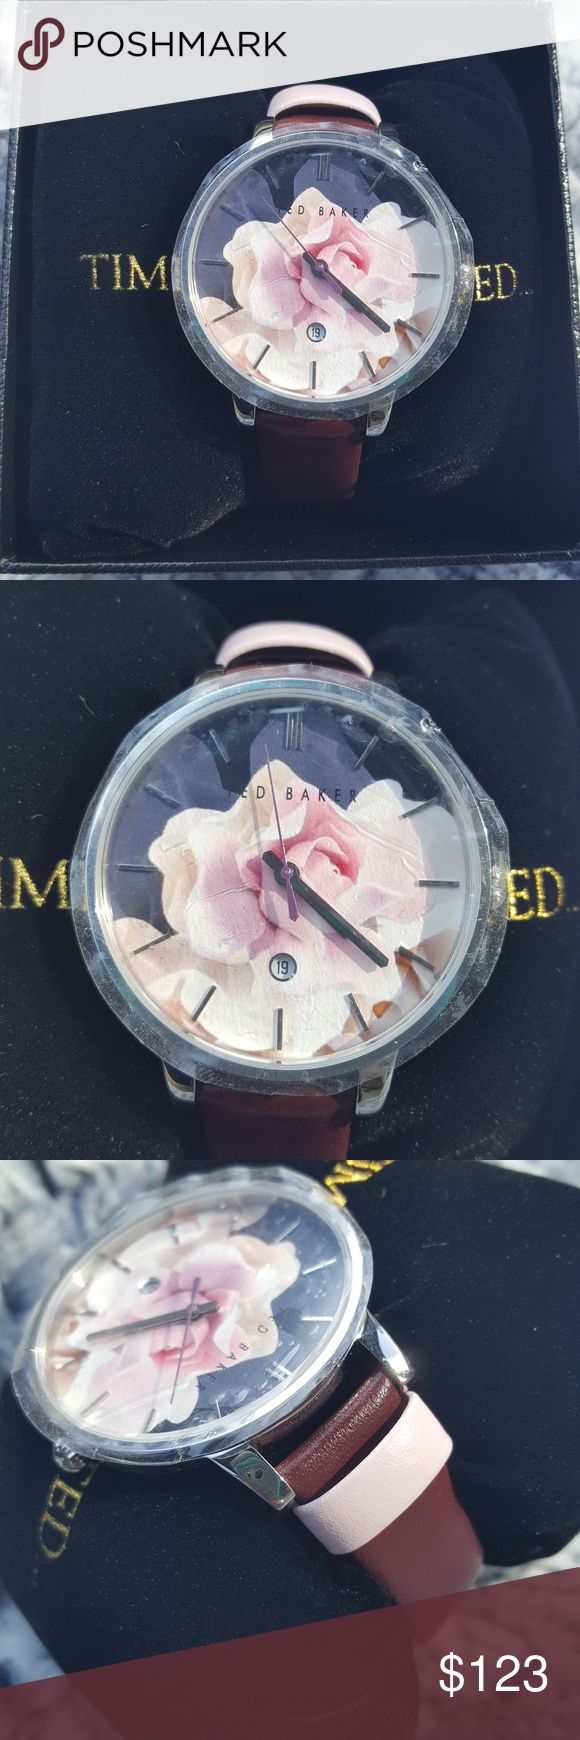 Ted Baker Floral Oversized Watch This Ted Baker London watch is new with tags and the Box. The floral face is beautiful and it even includes the day of the month. The plastic still covers the face so there are absolutely no scratches. The band is a beautiful maroon accented with a pale pink. Ted Baker London Accessories Watches